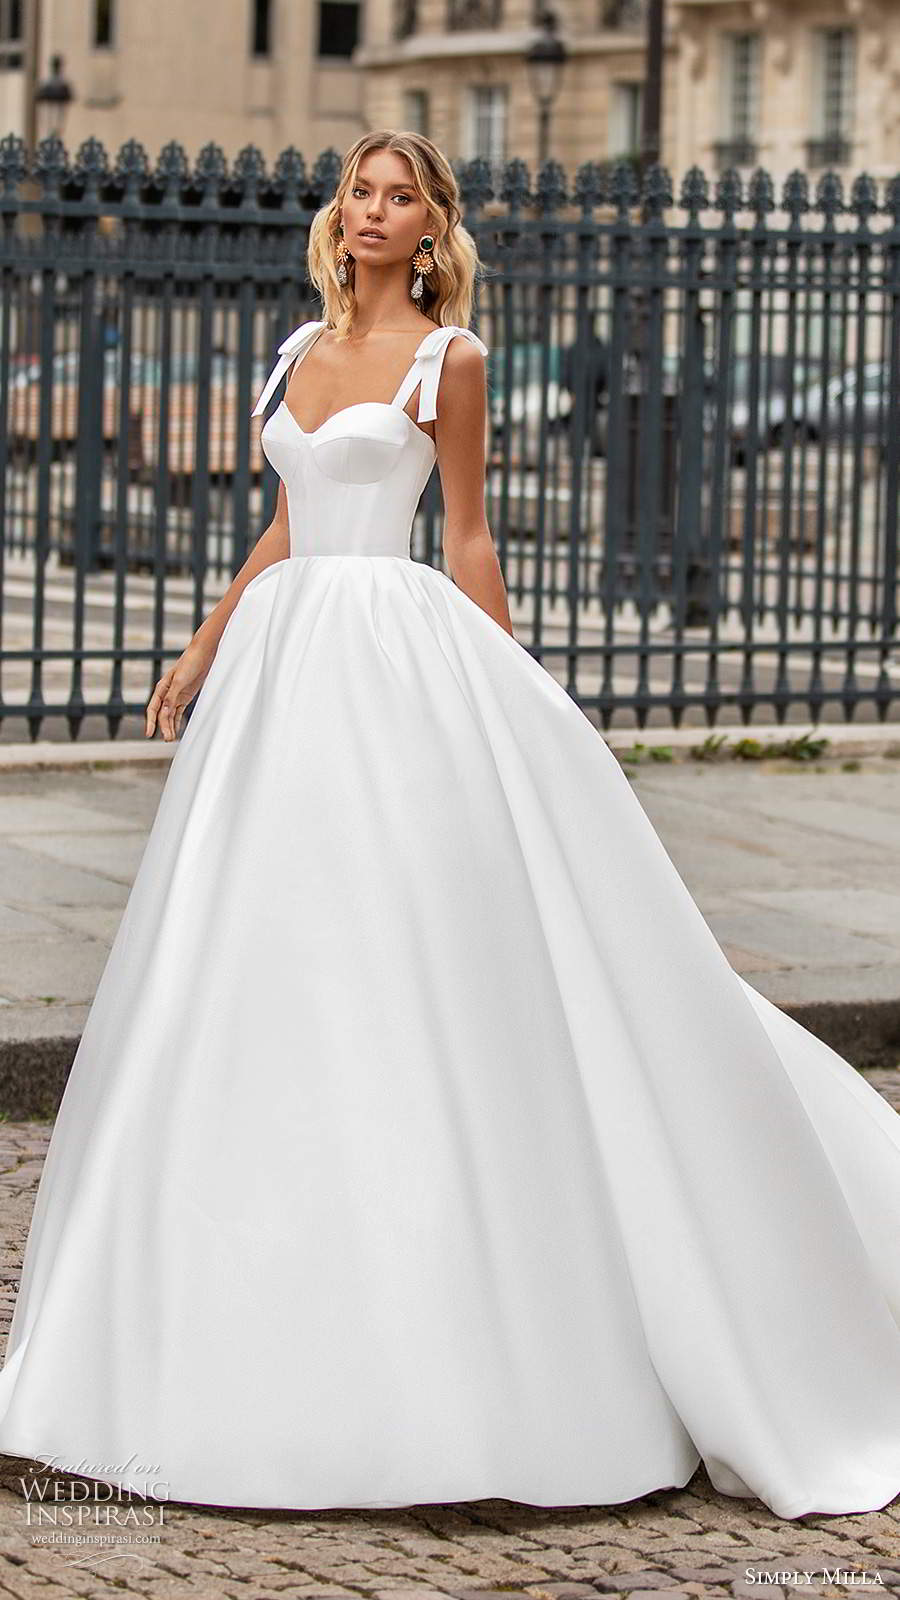 simply milla nova 2020 bridal sleeveless bow straps sweetheart neckline clean minimalist a line ball gown wedding dress chapel train (4) mv